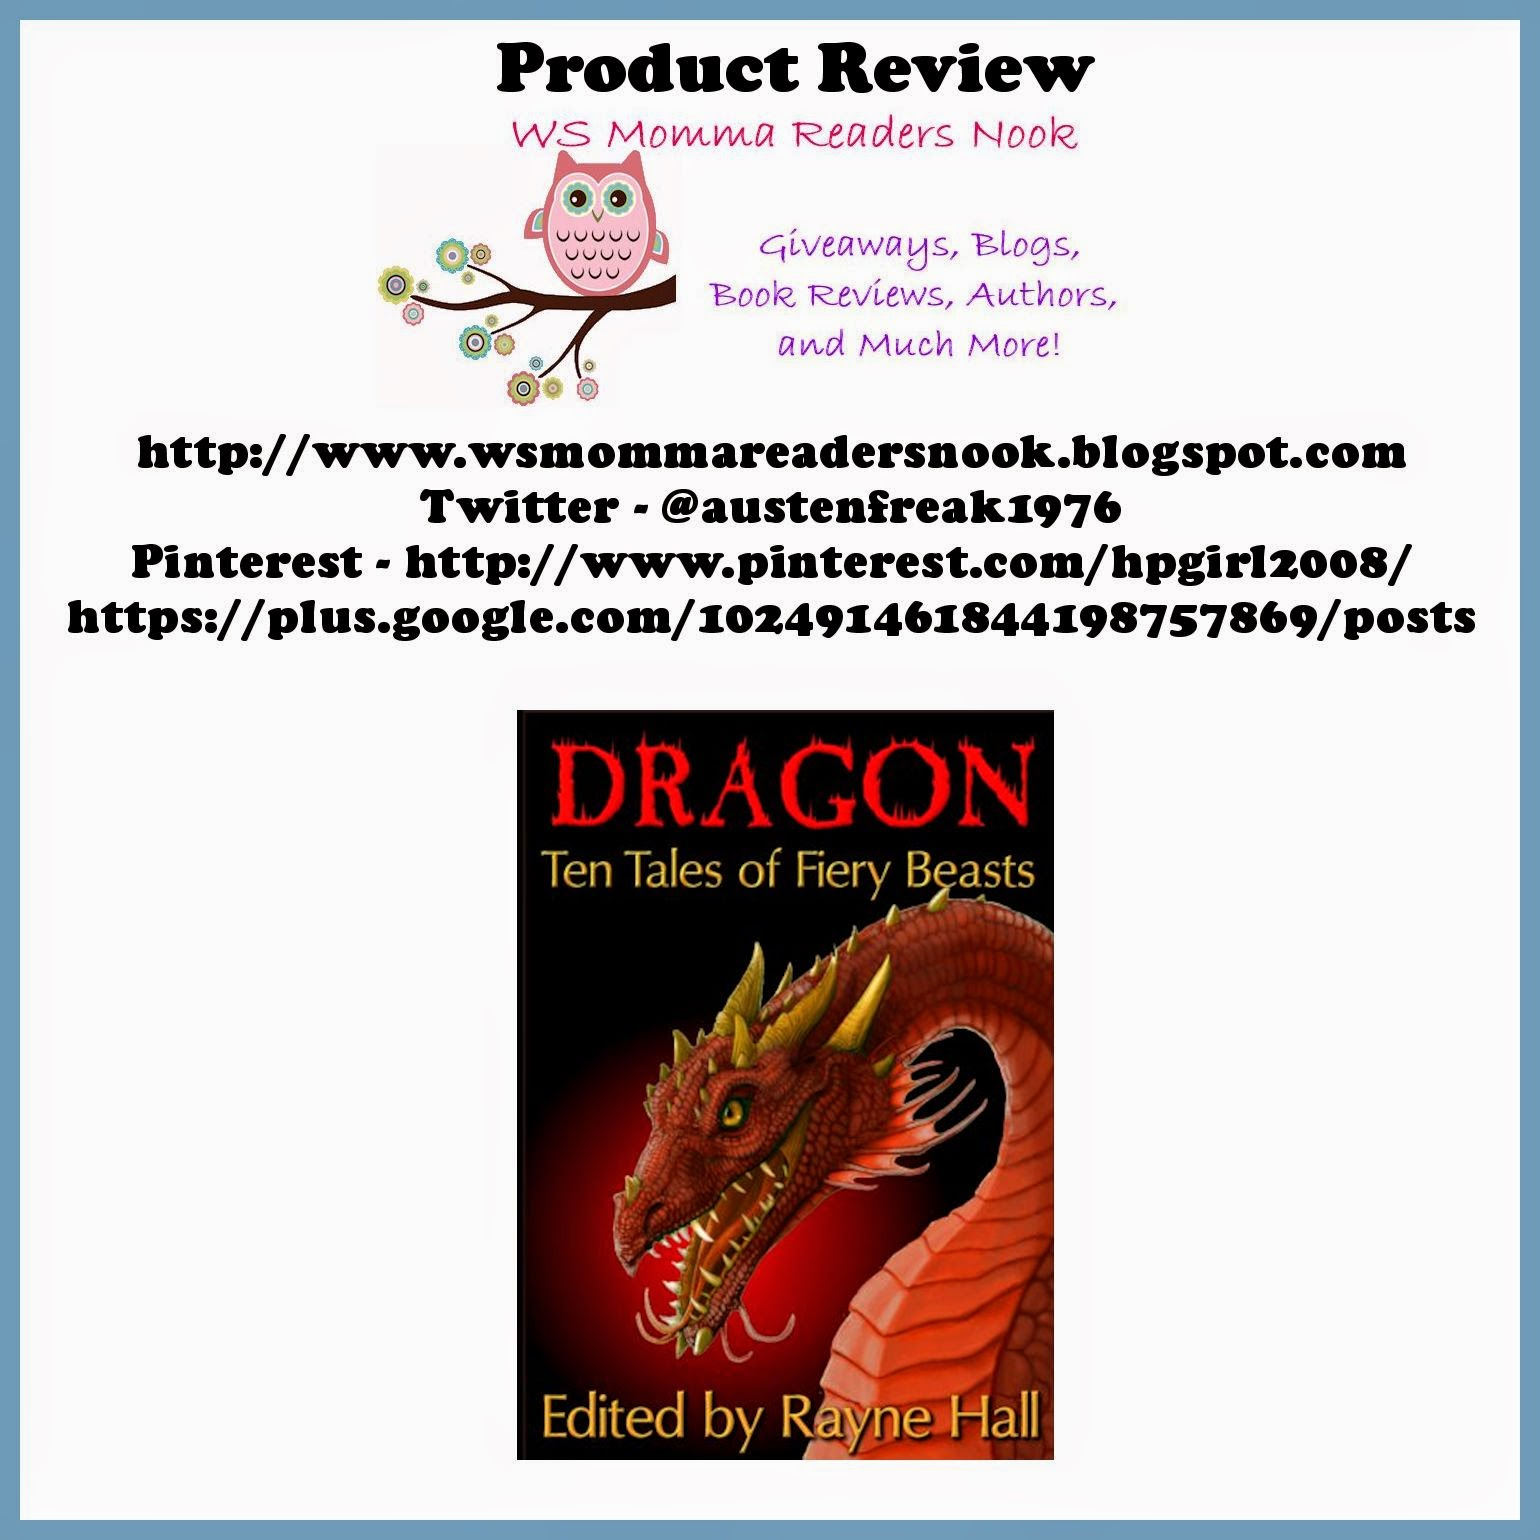 http://www.amazon.co.uk/Dragon-Beasts-Fantasy-Horror-Stories-ebook/dp/B00HFG339M/ref=sr_1_1?ie=UTF8&qid=1412557030&sr=8-1&keywords=dragon+ten+tales